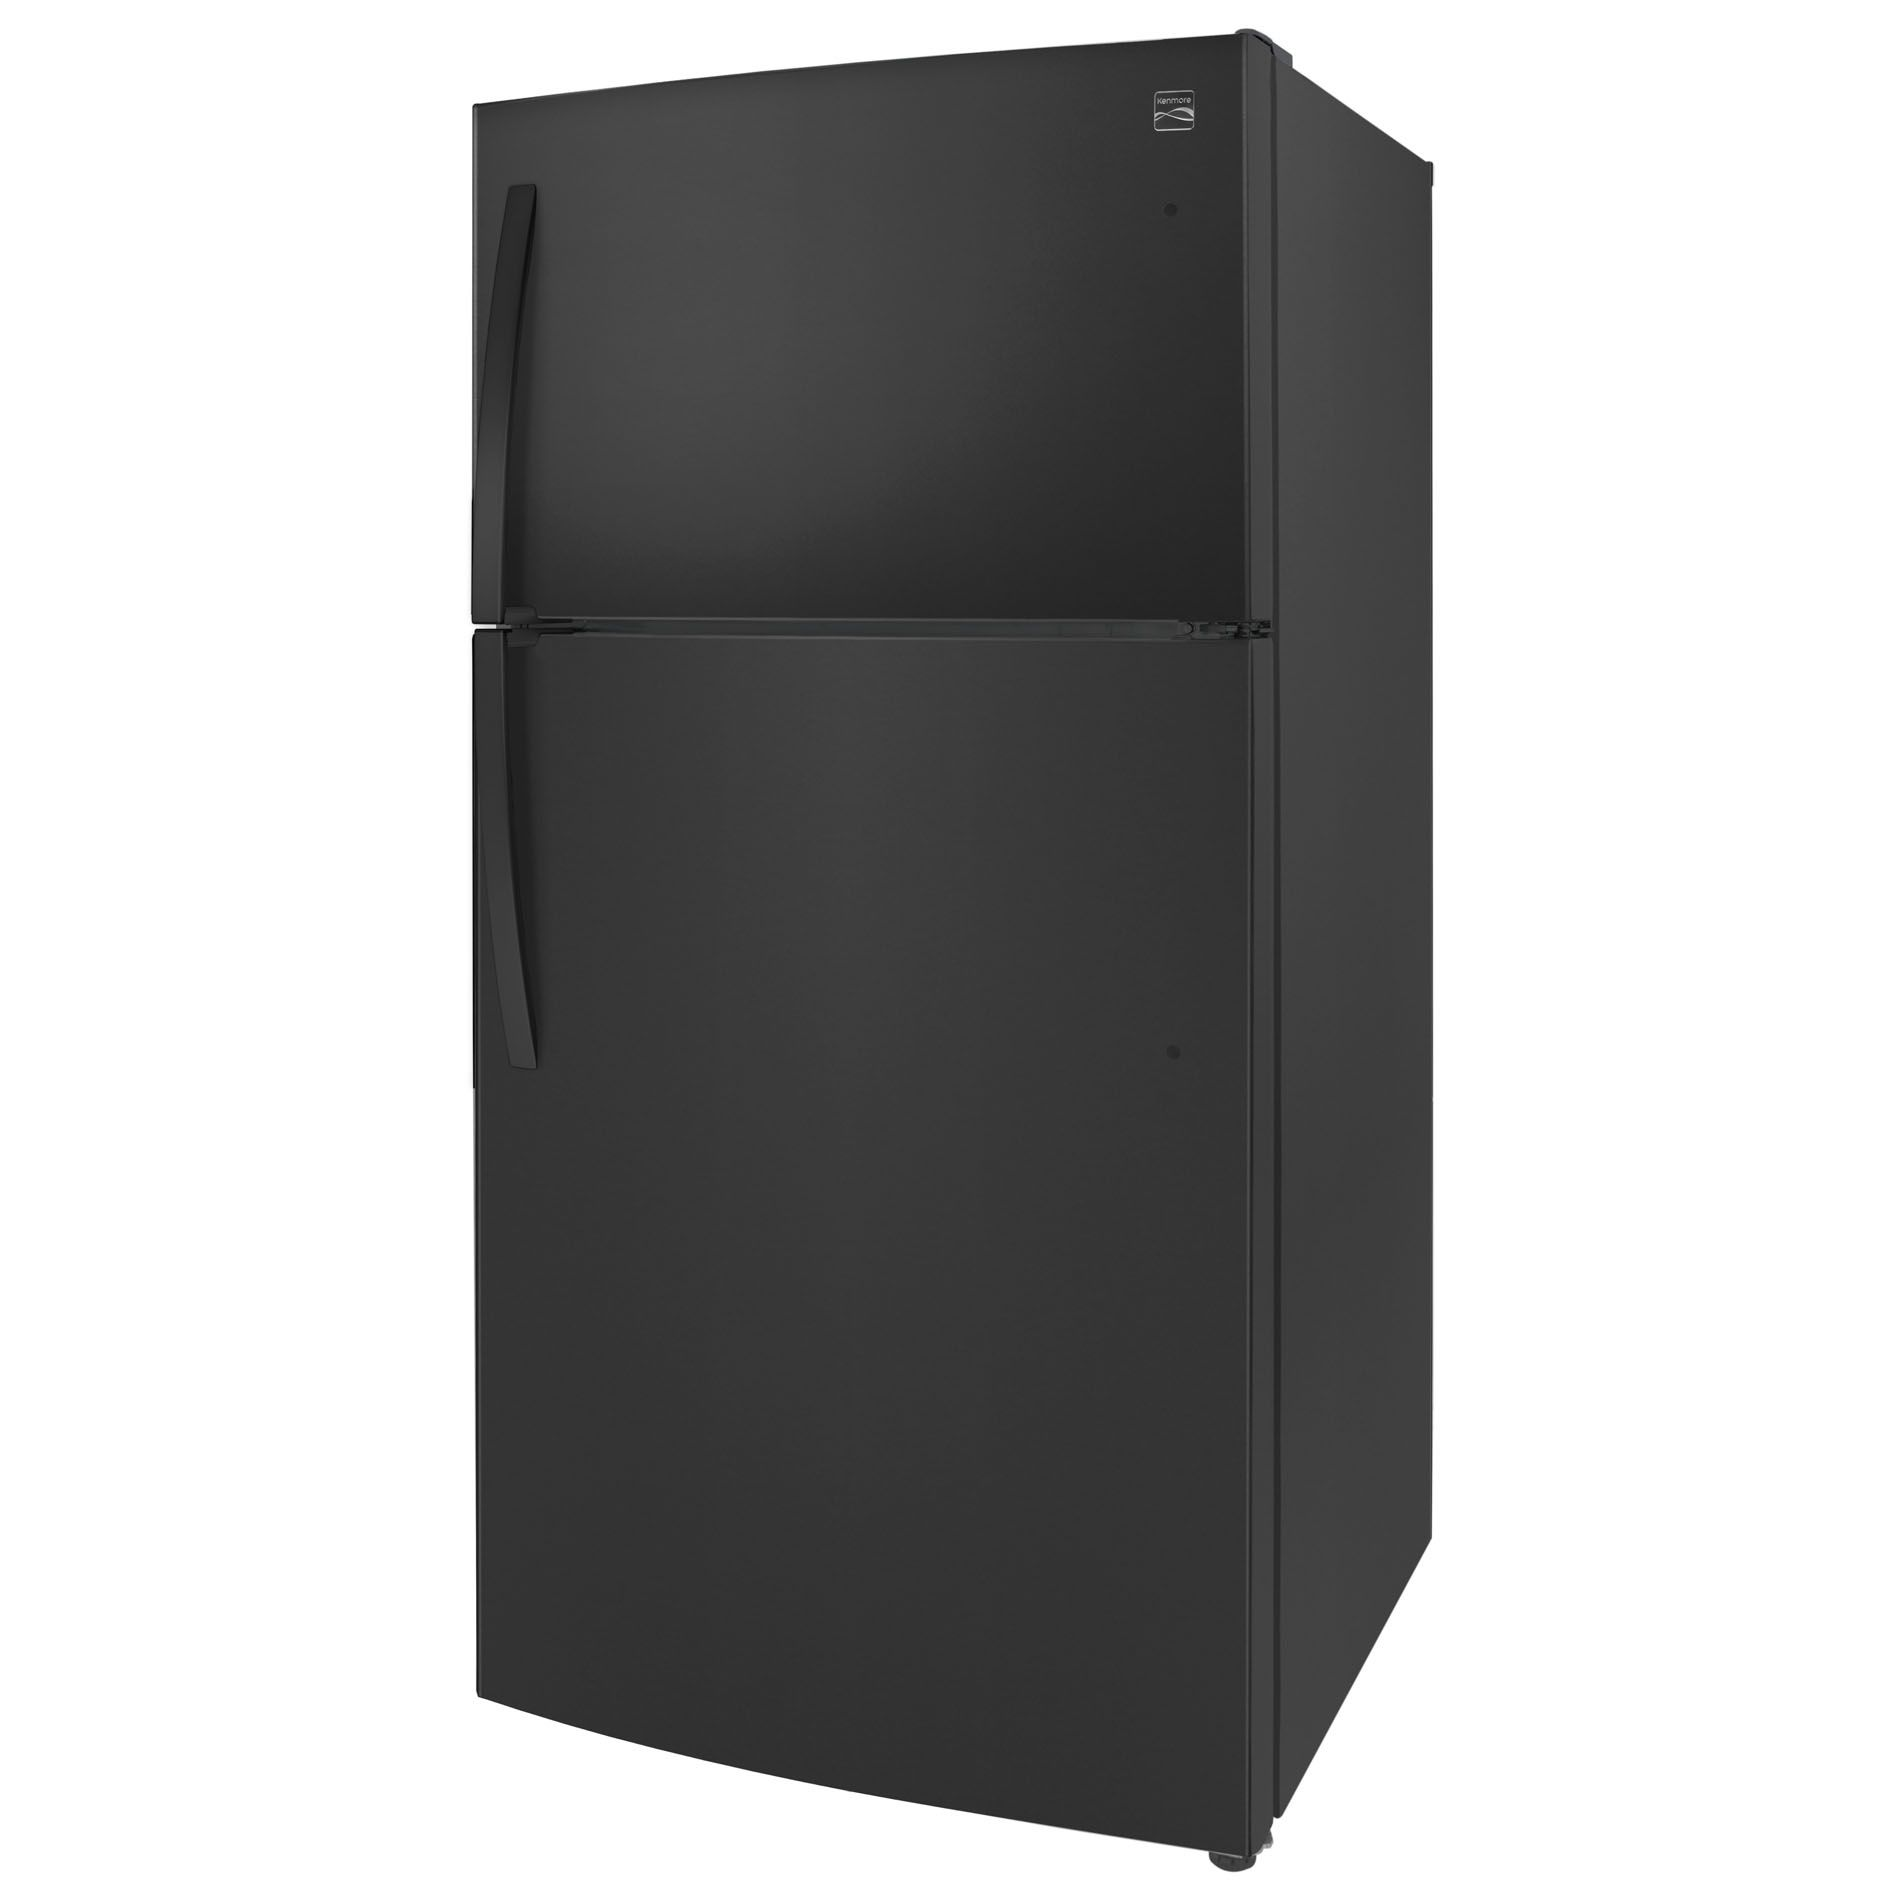 Kenmore 68039 23.8 cu. ft. Top-Freezer Refrigerator - Black